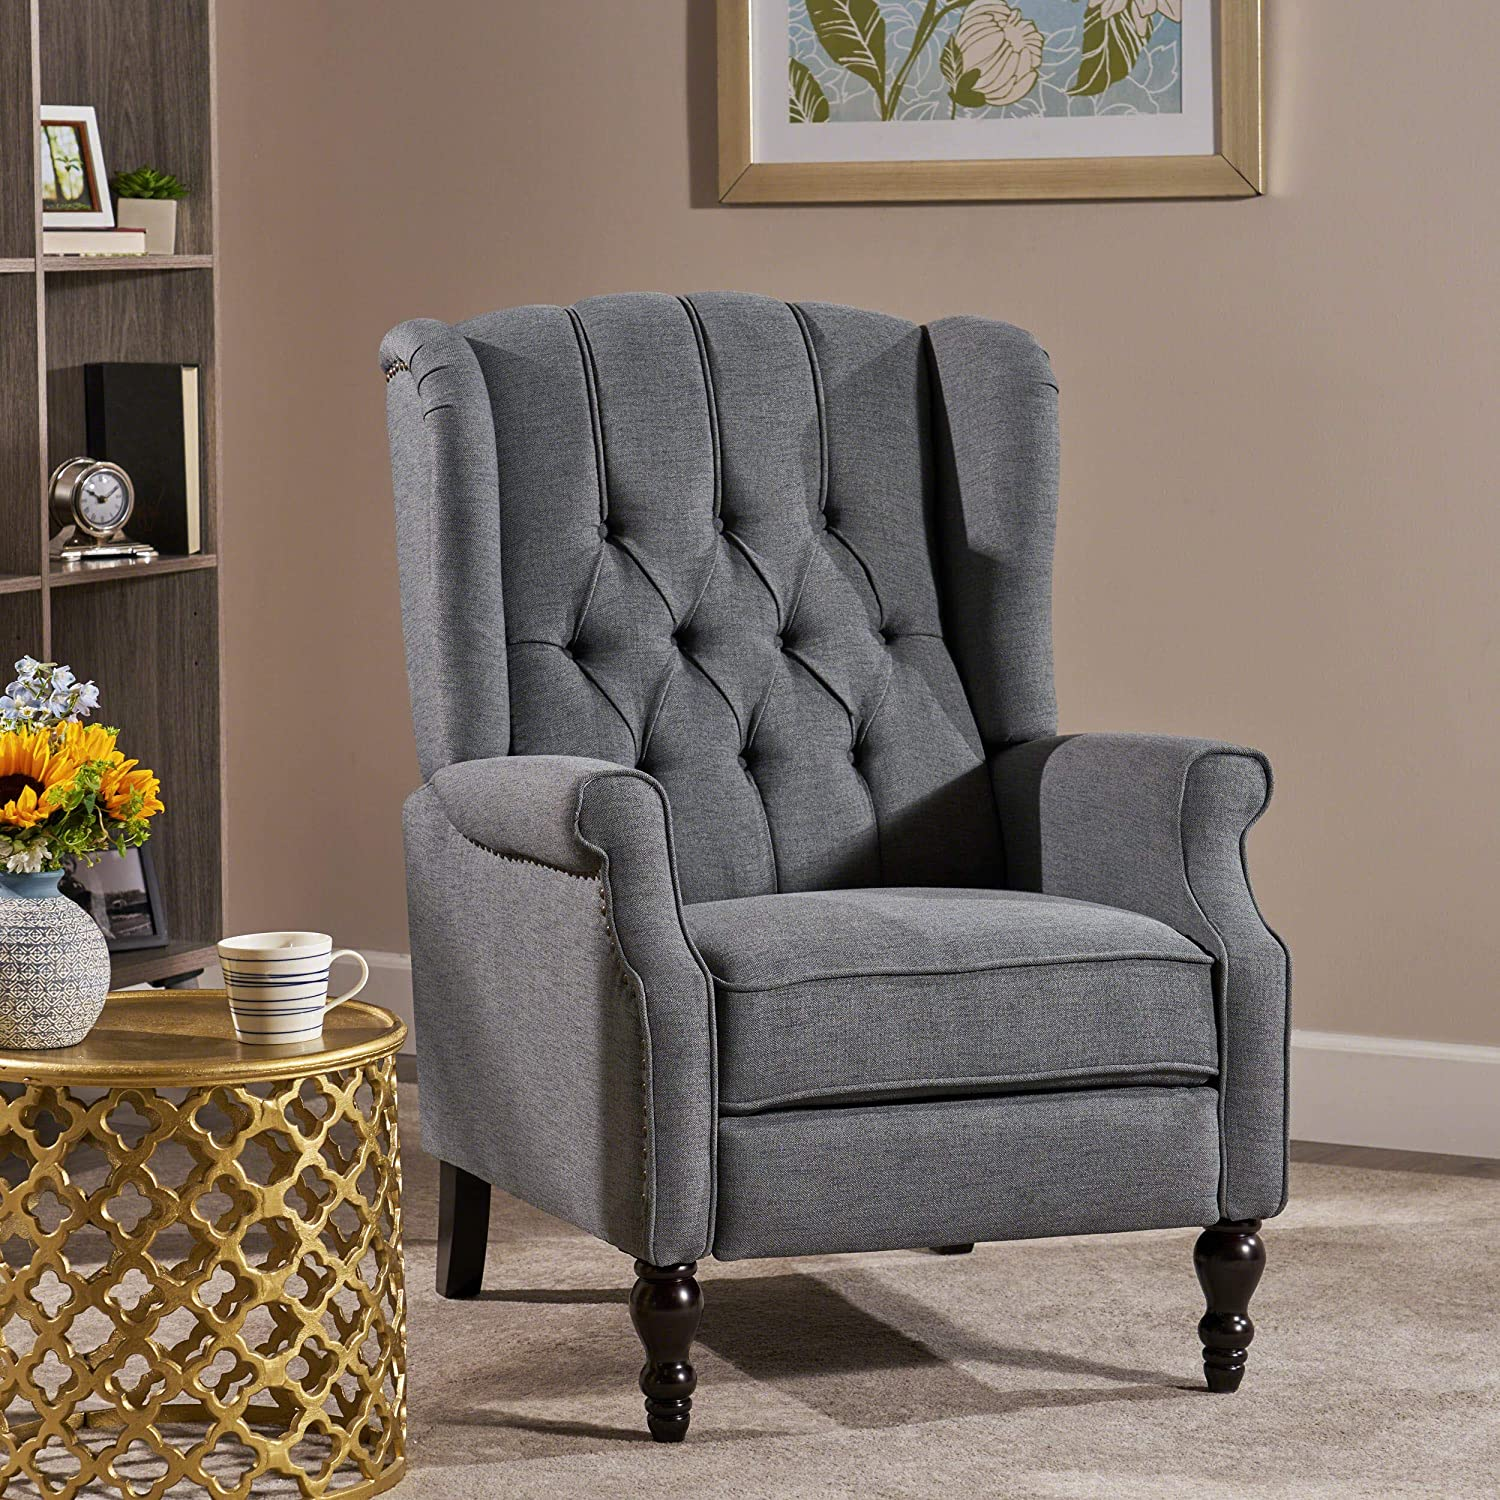 GDF Studio Elizabeth Tufted Charcoal Fabric Recliner Arm Chair